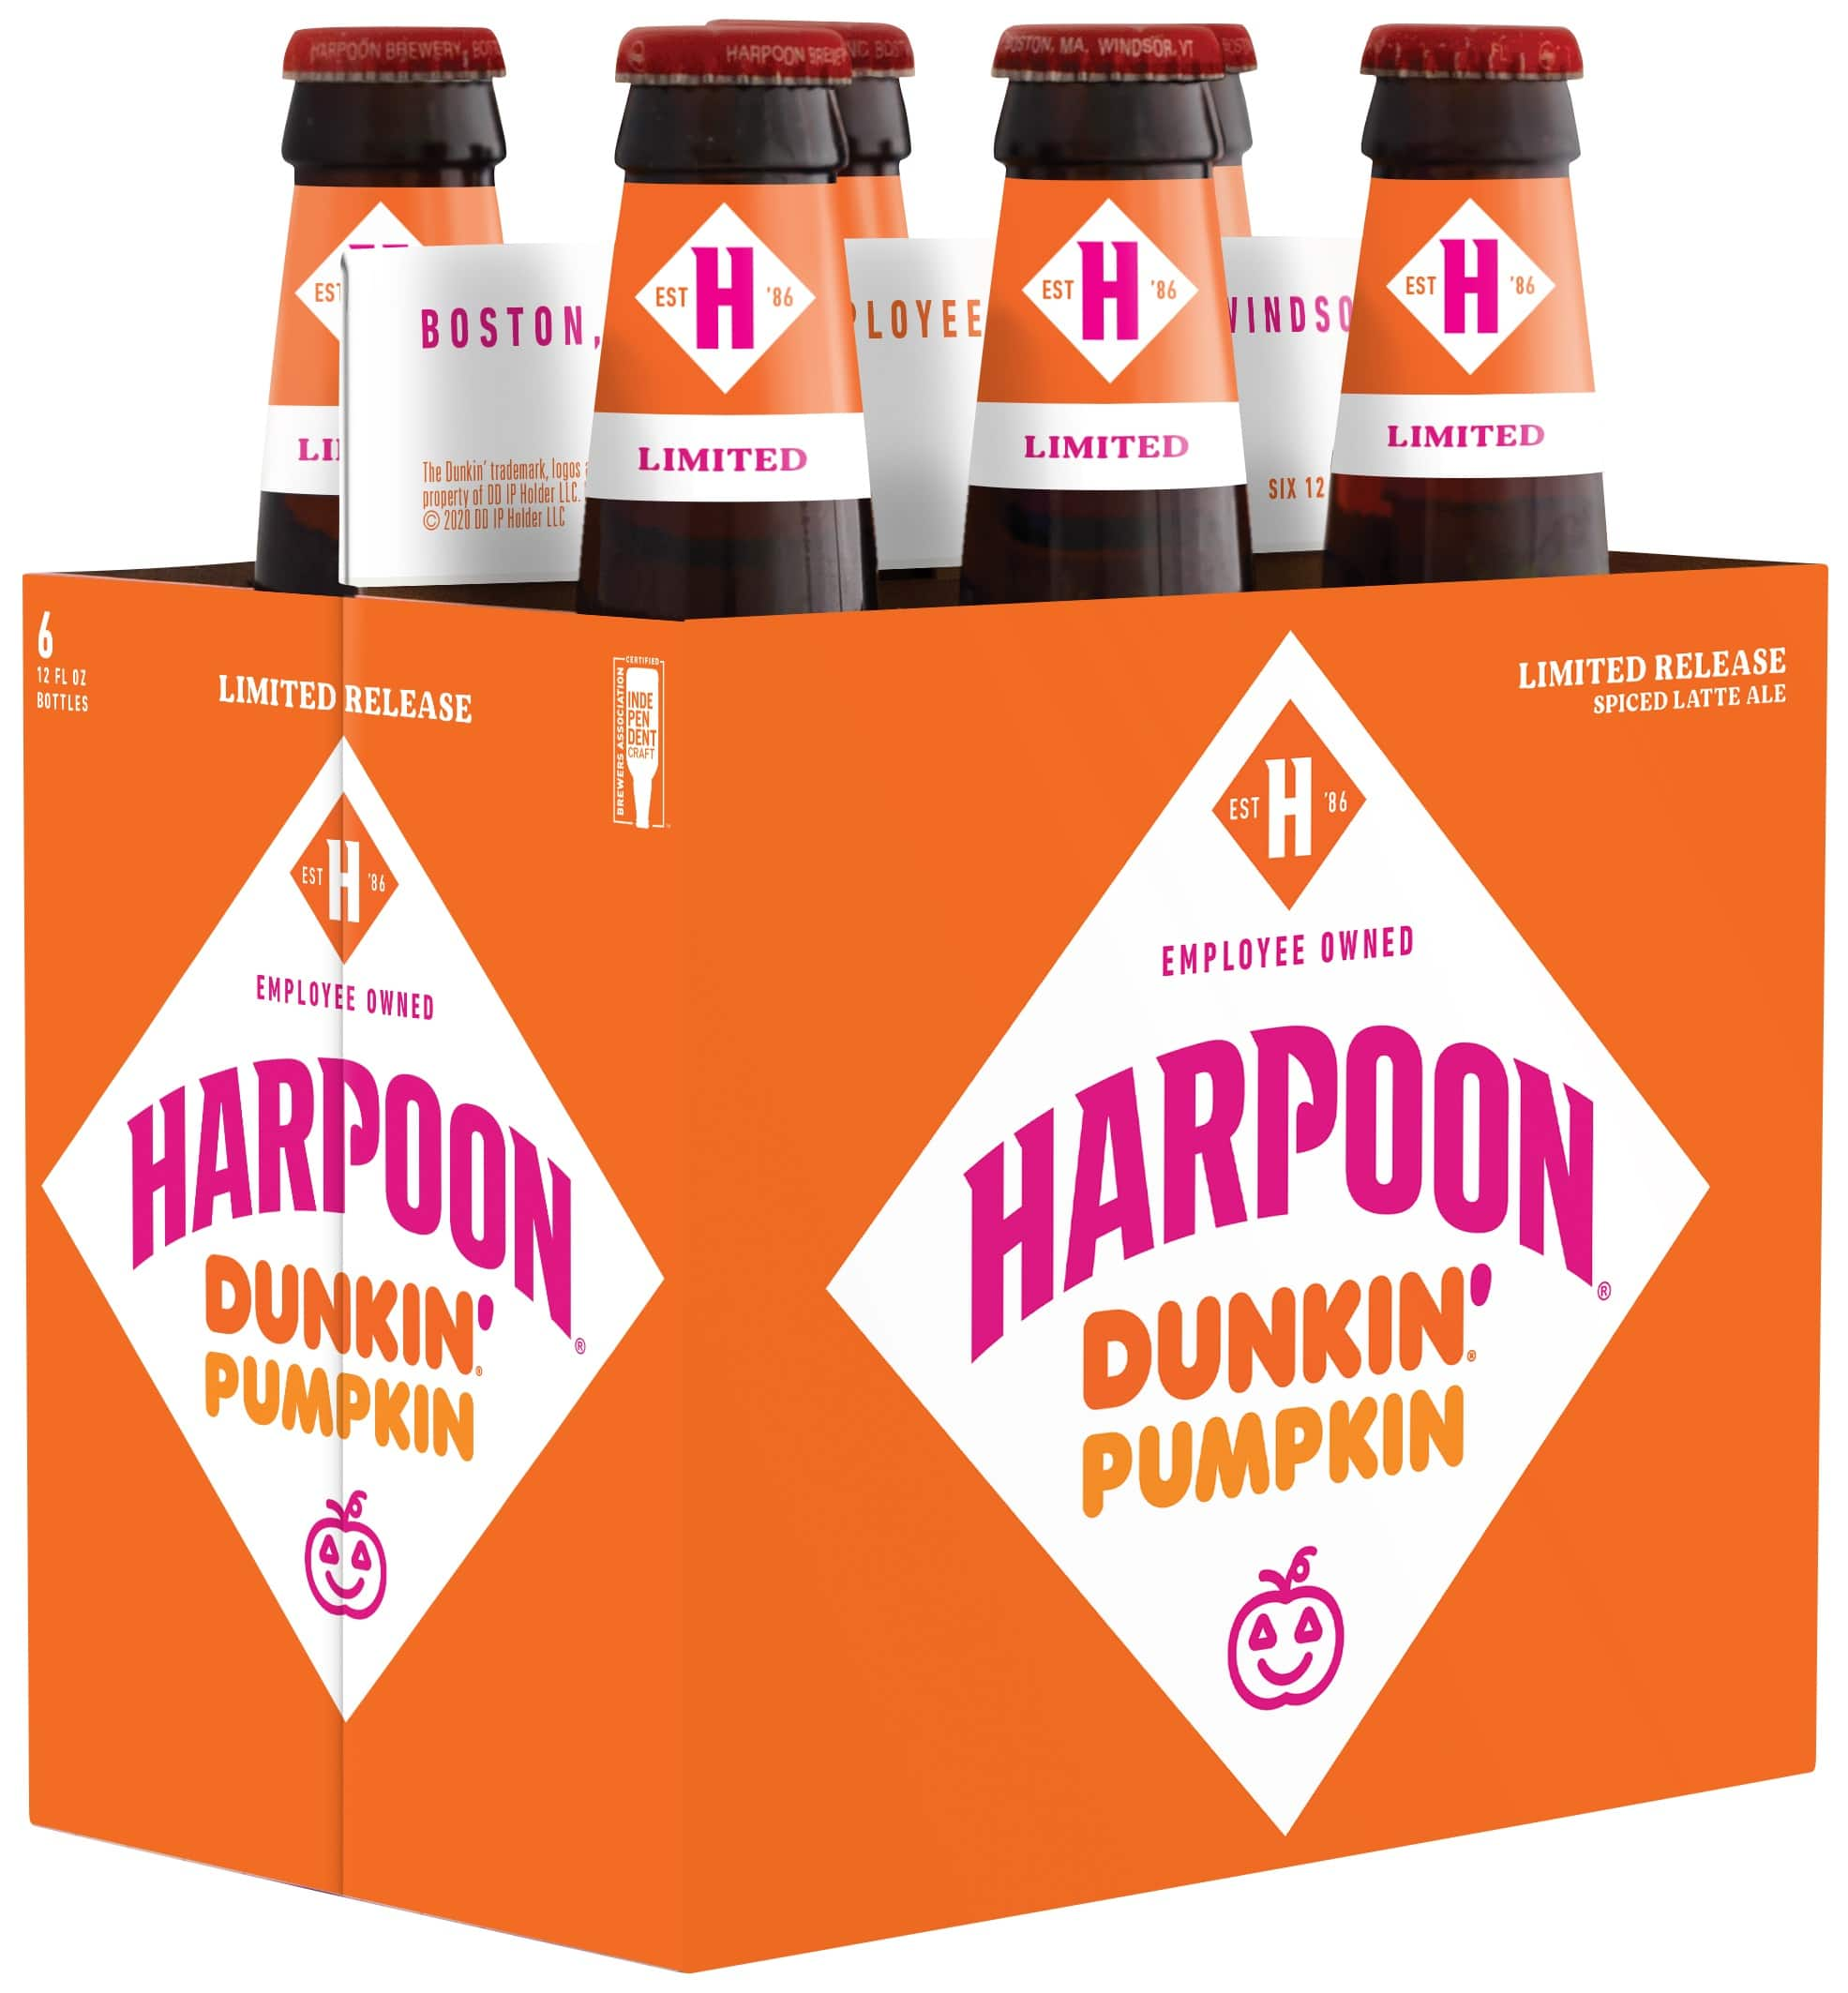 Harpoon Brewery is releasing 3 new Dunkin' Donuts-inspired beers for fall 20